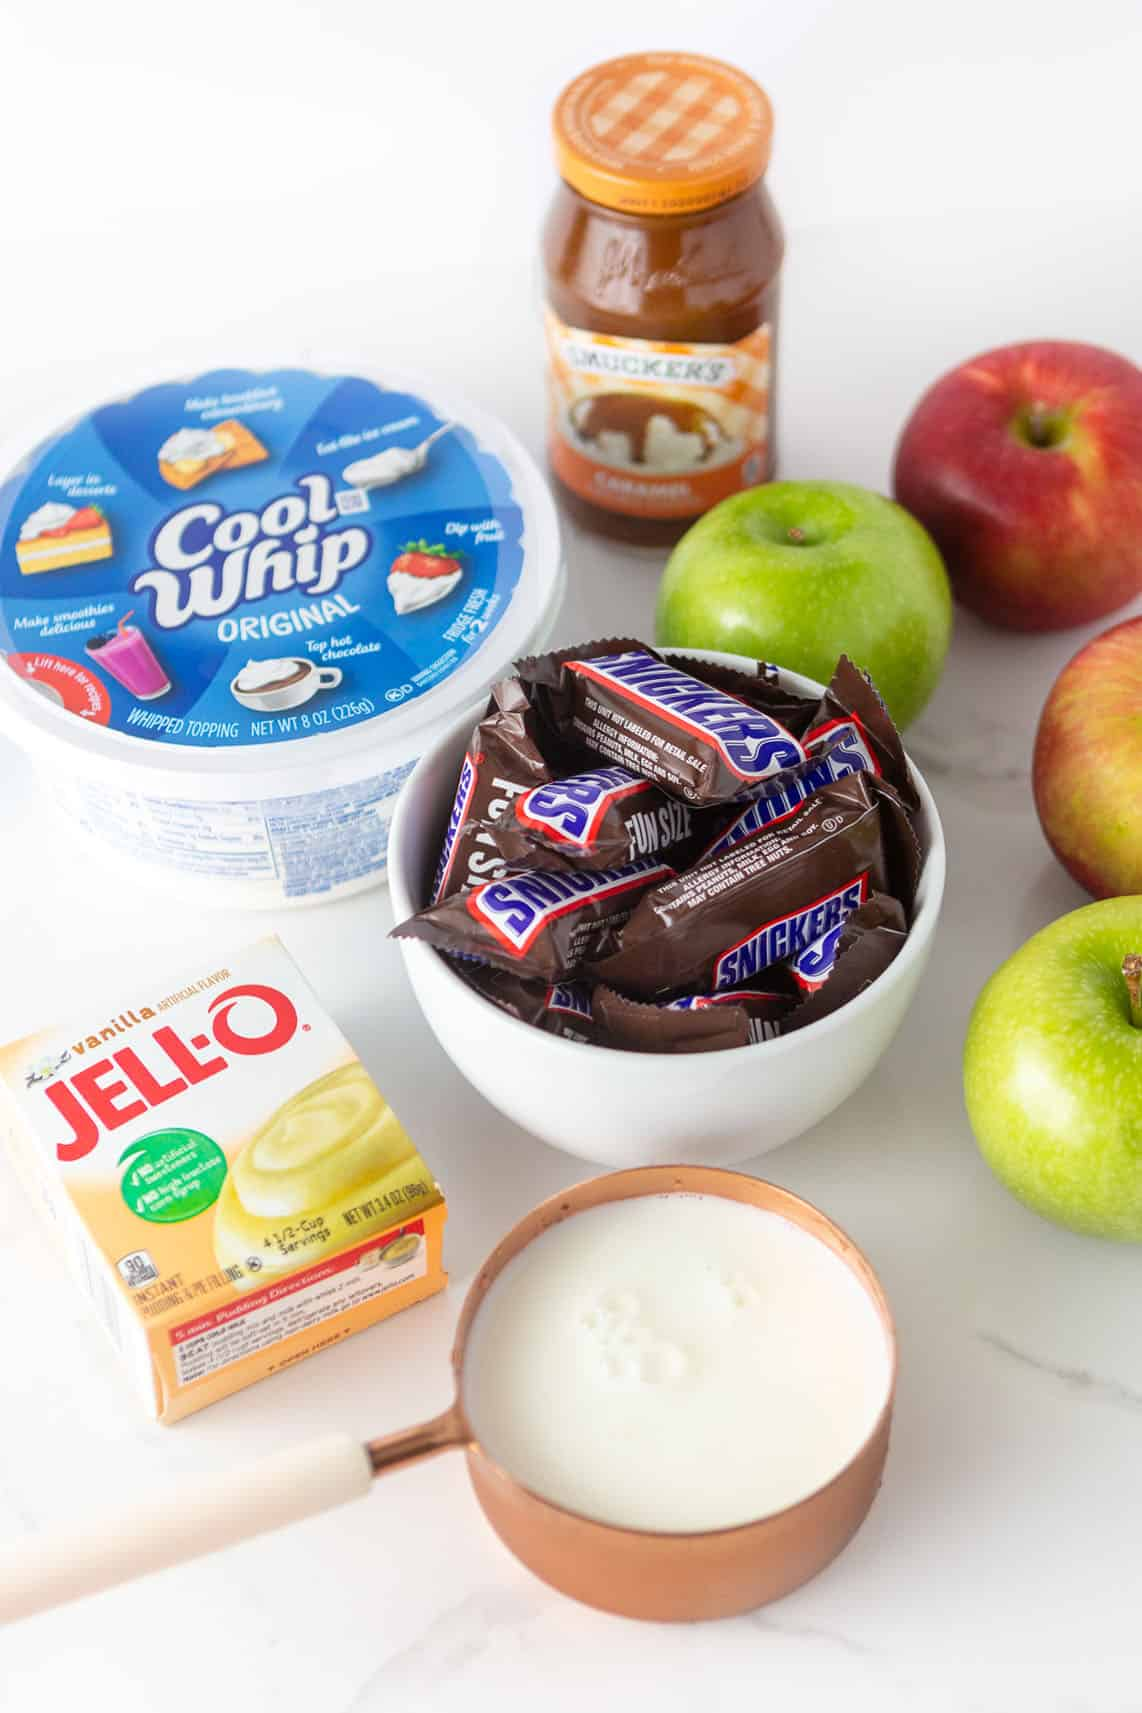 Ingredients for apple snickers salad; includes bowl of snickers, cool whip, a box of instant vanilla pudding mix, milk, apples, and a jar of Smuckers caramel sauce